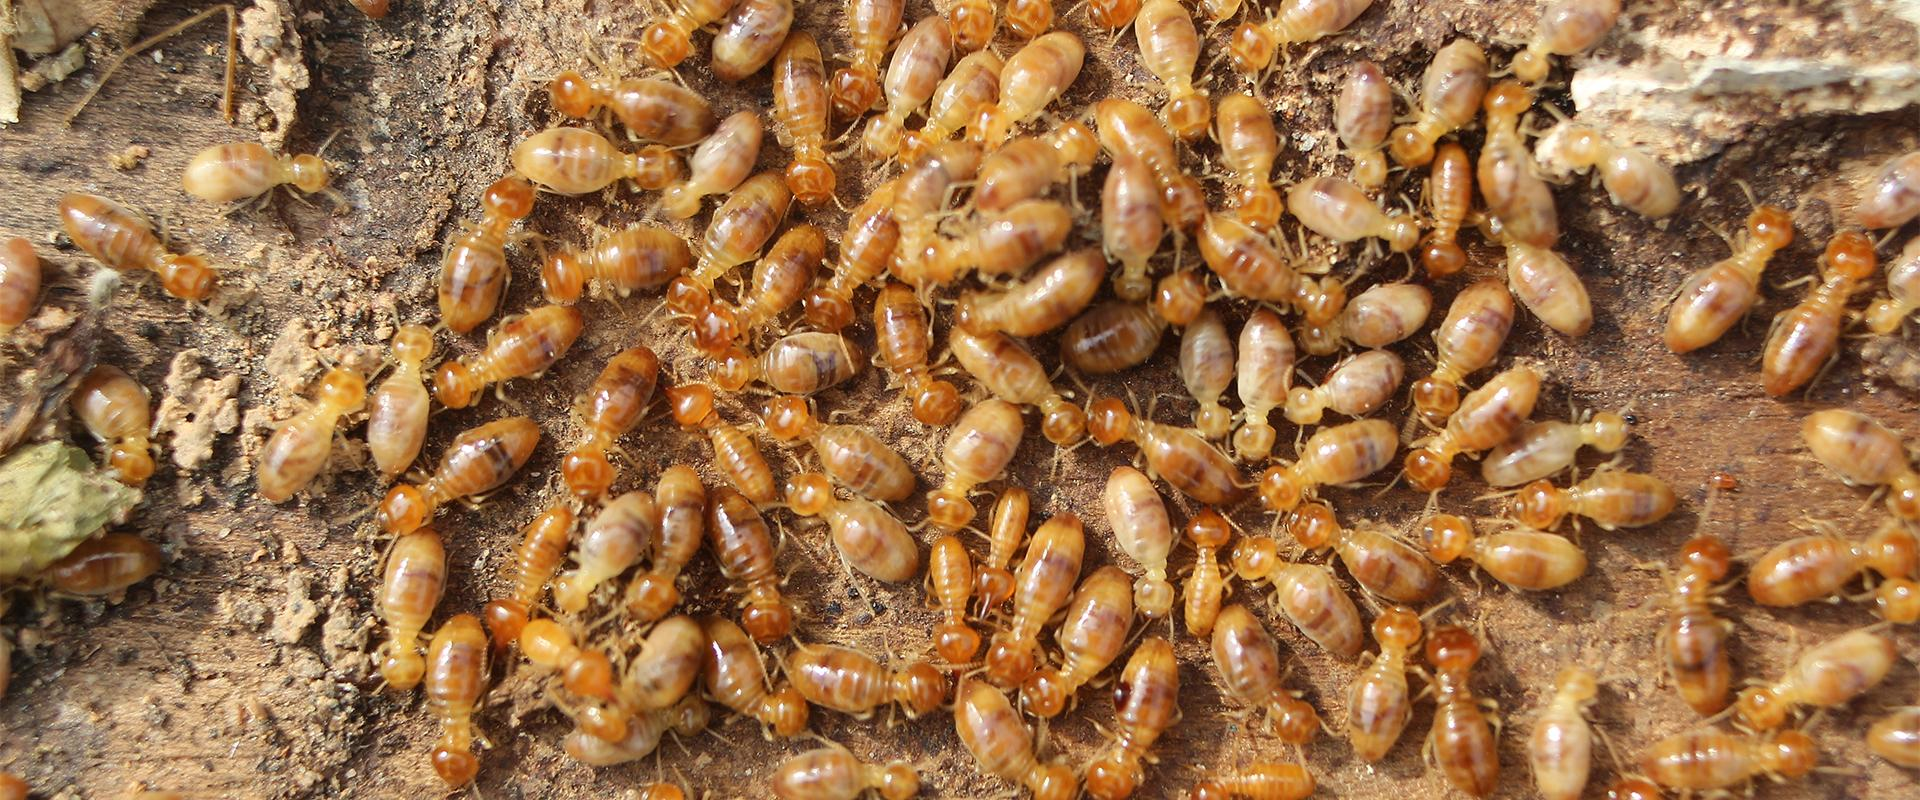 a mass of termites on dirt